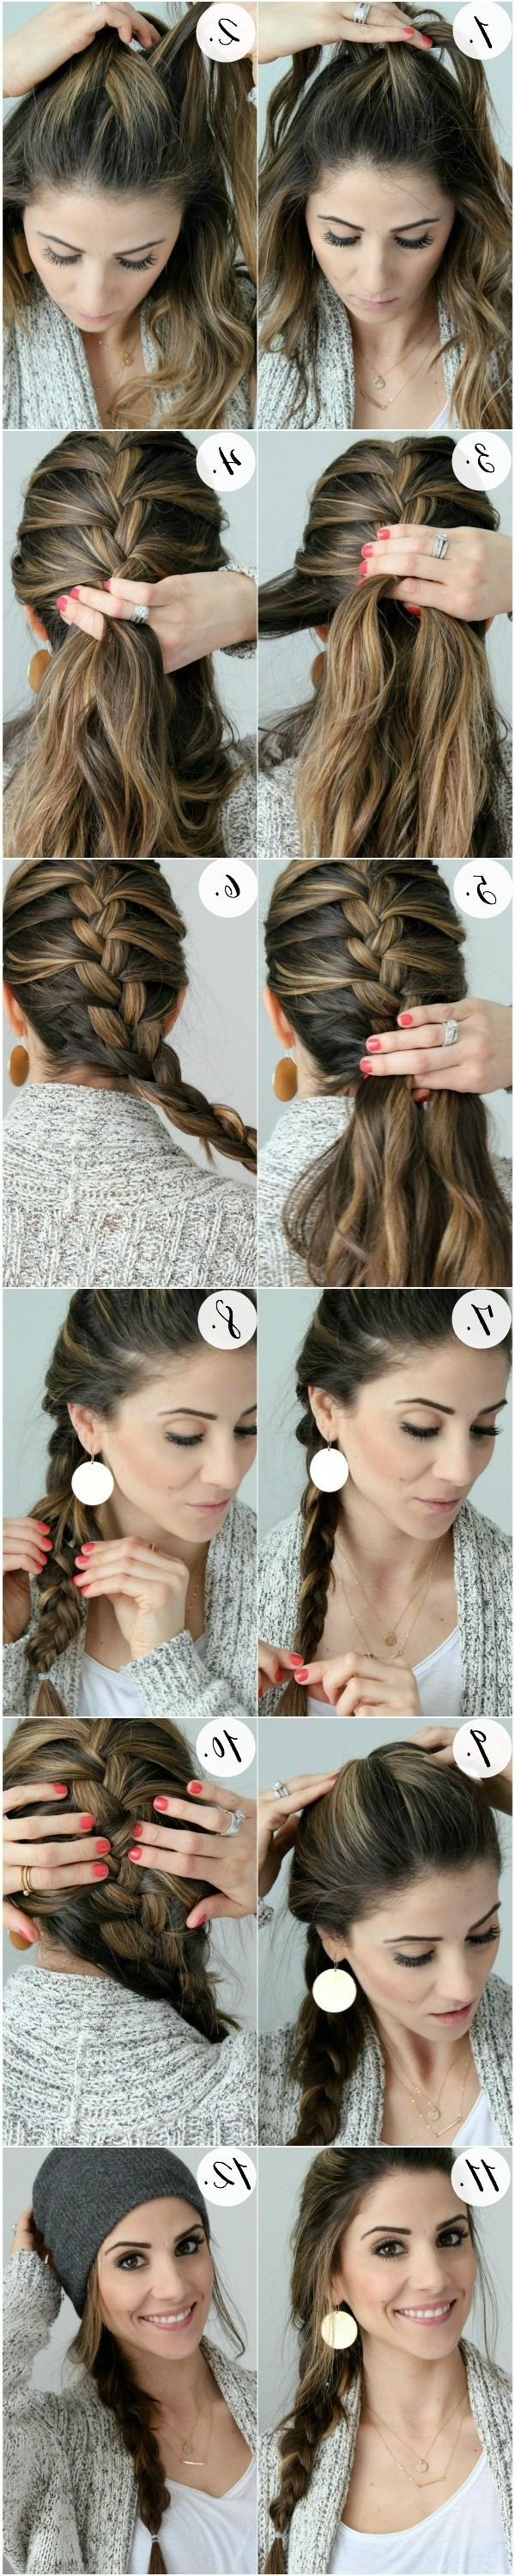 Simple French Braid Tutorial (View 14 of 15)